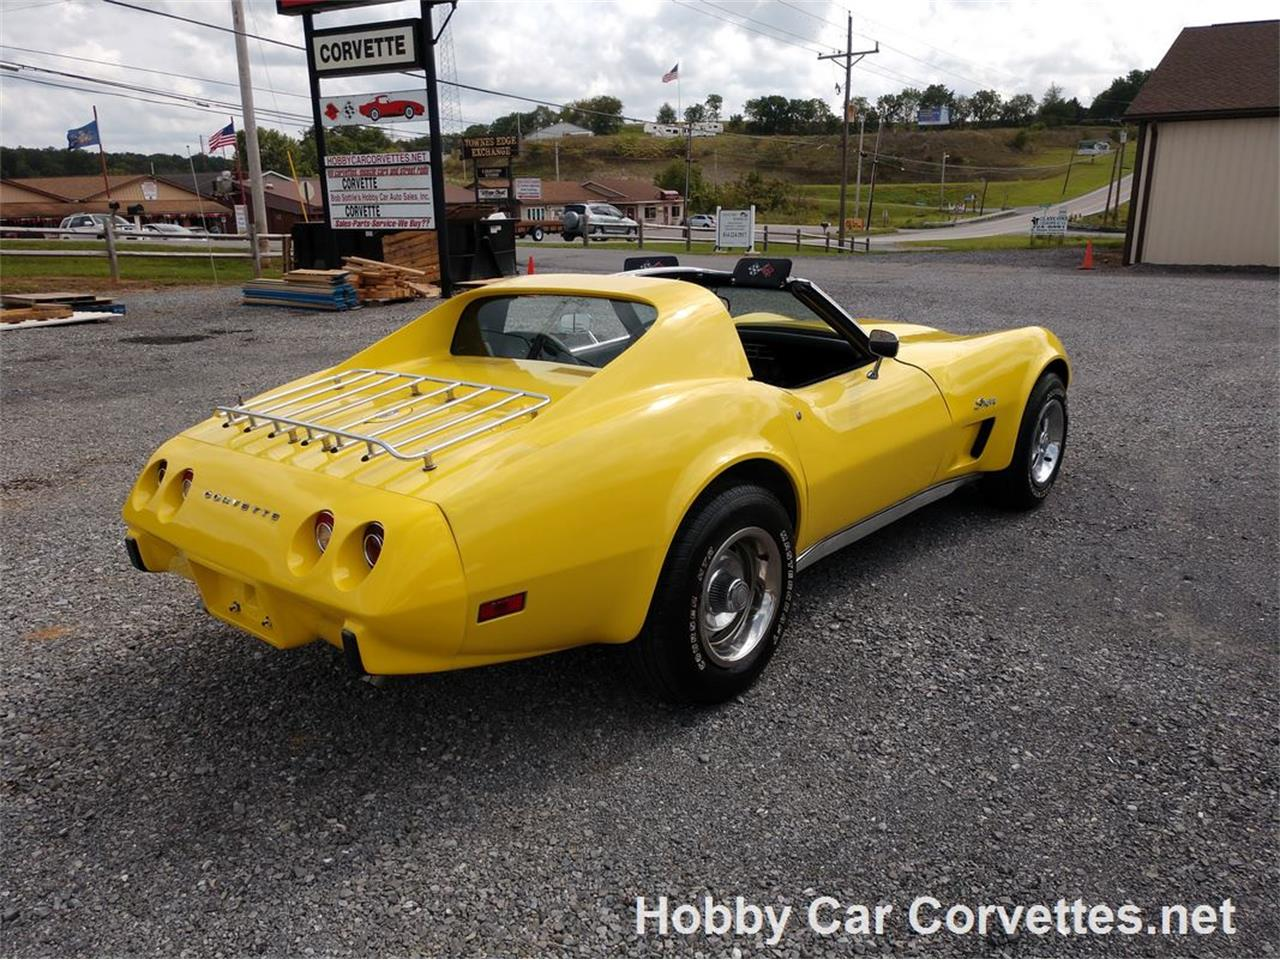 Large Picture of 1975 Chevrolet Corvette located in Martinsburg Pennsylvania - $15,999.00 - LRQK